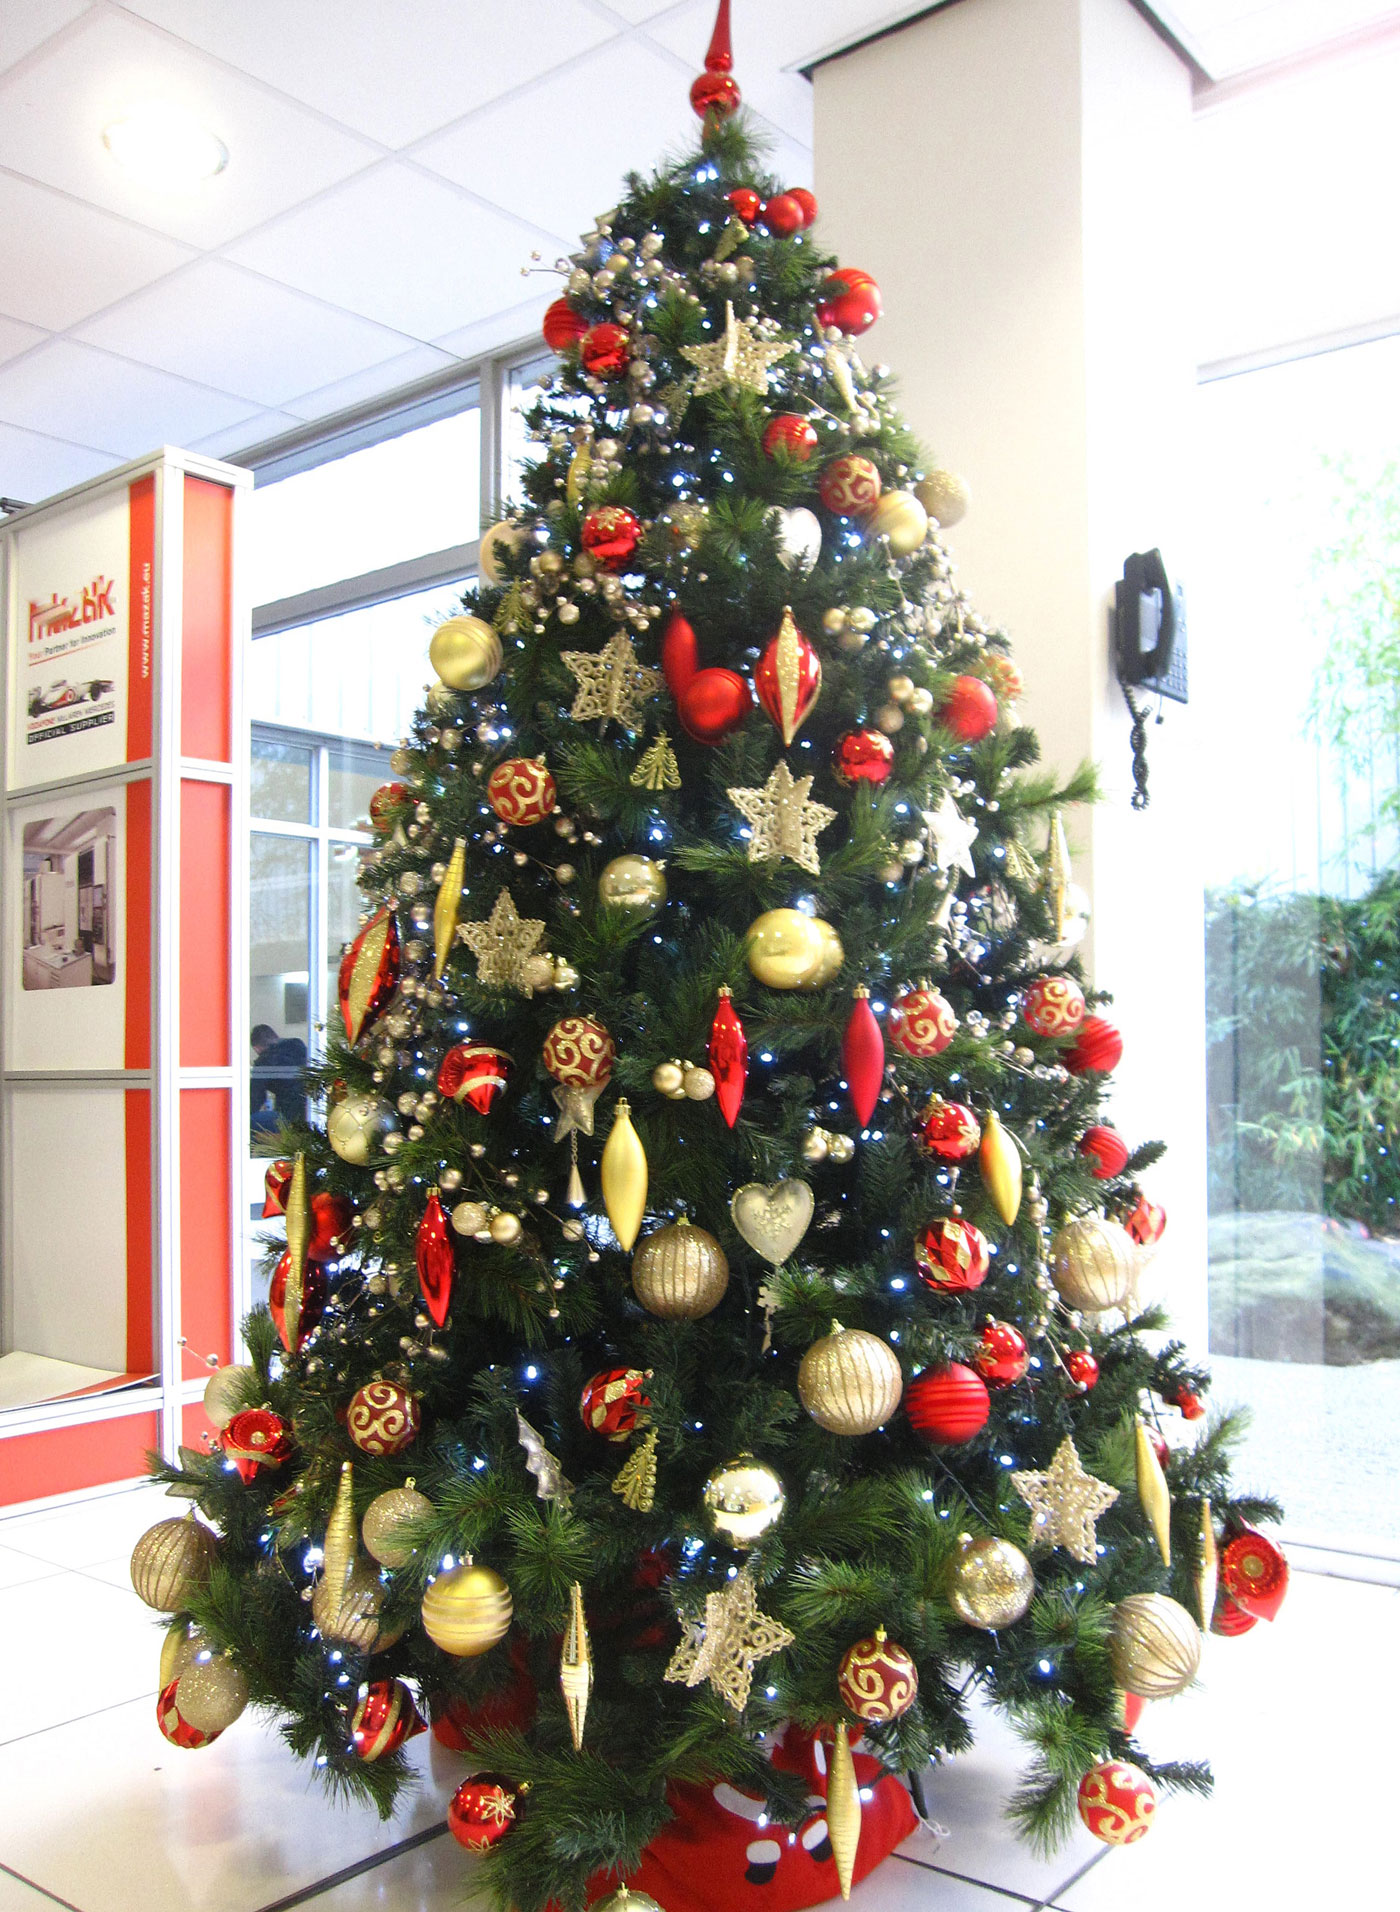 Christmas Tree Hire in Birmingham - Services | Office ...